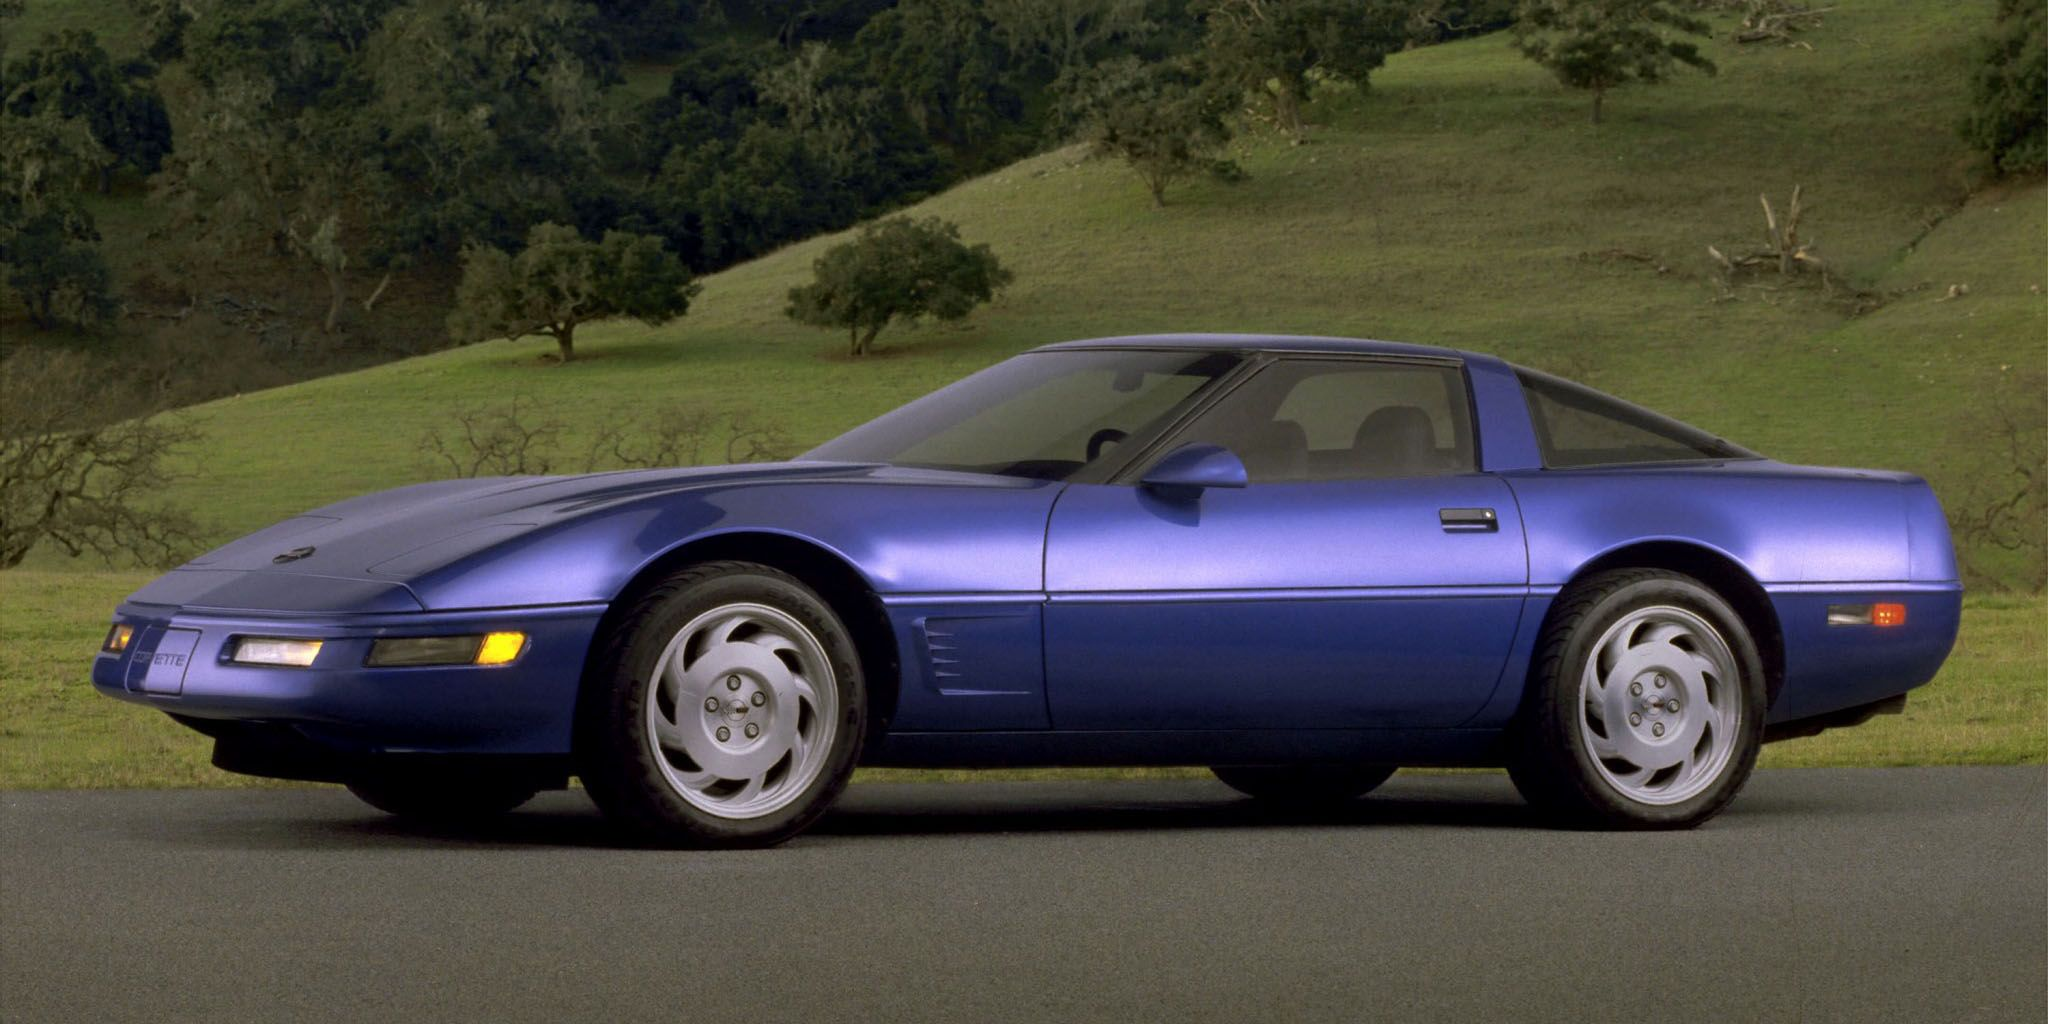 Is the 1991 Corvette more 80s than any other car?